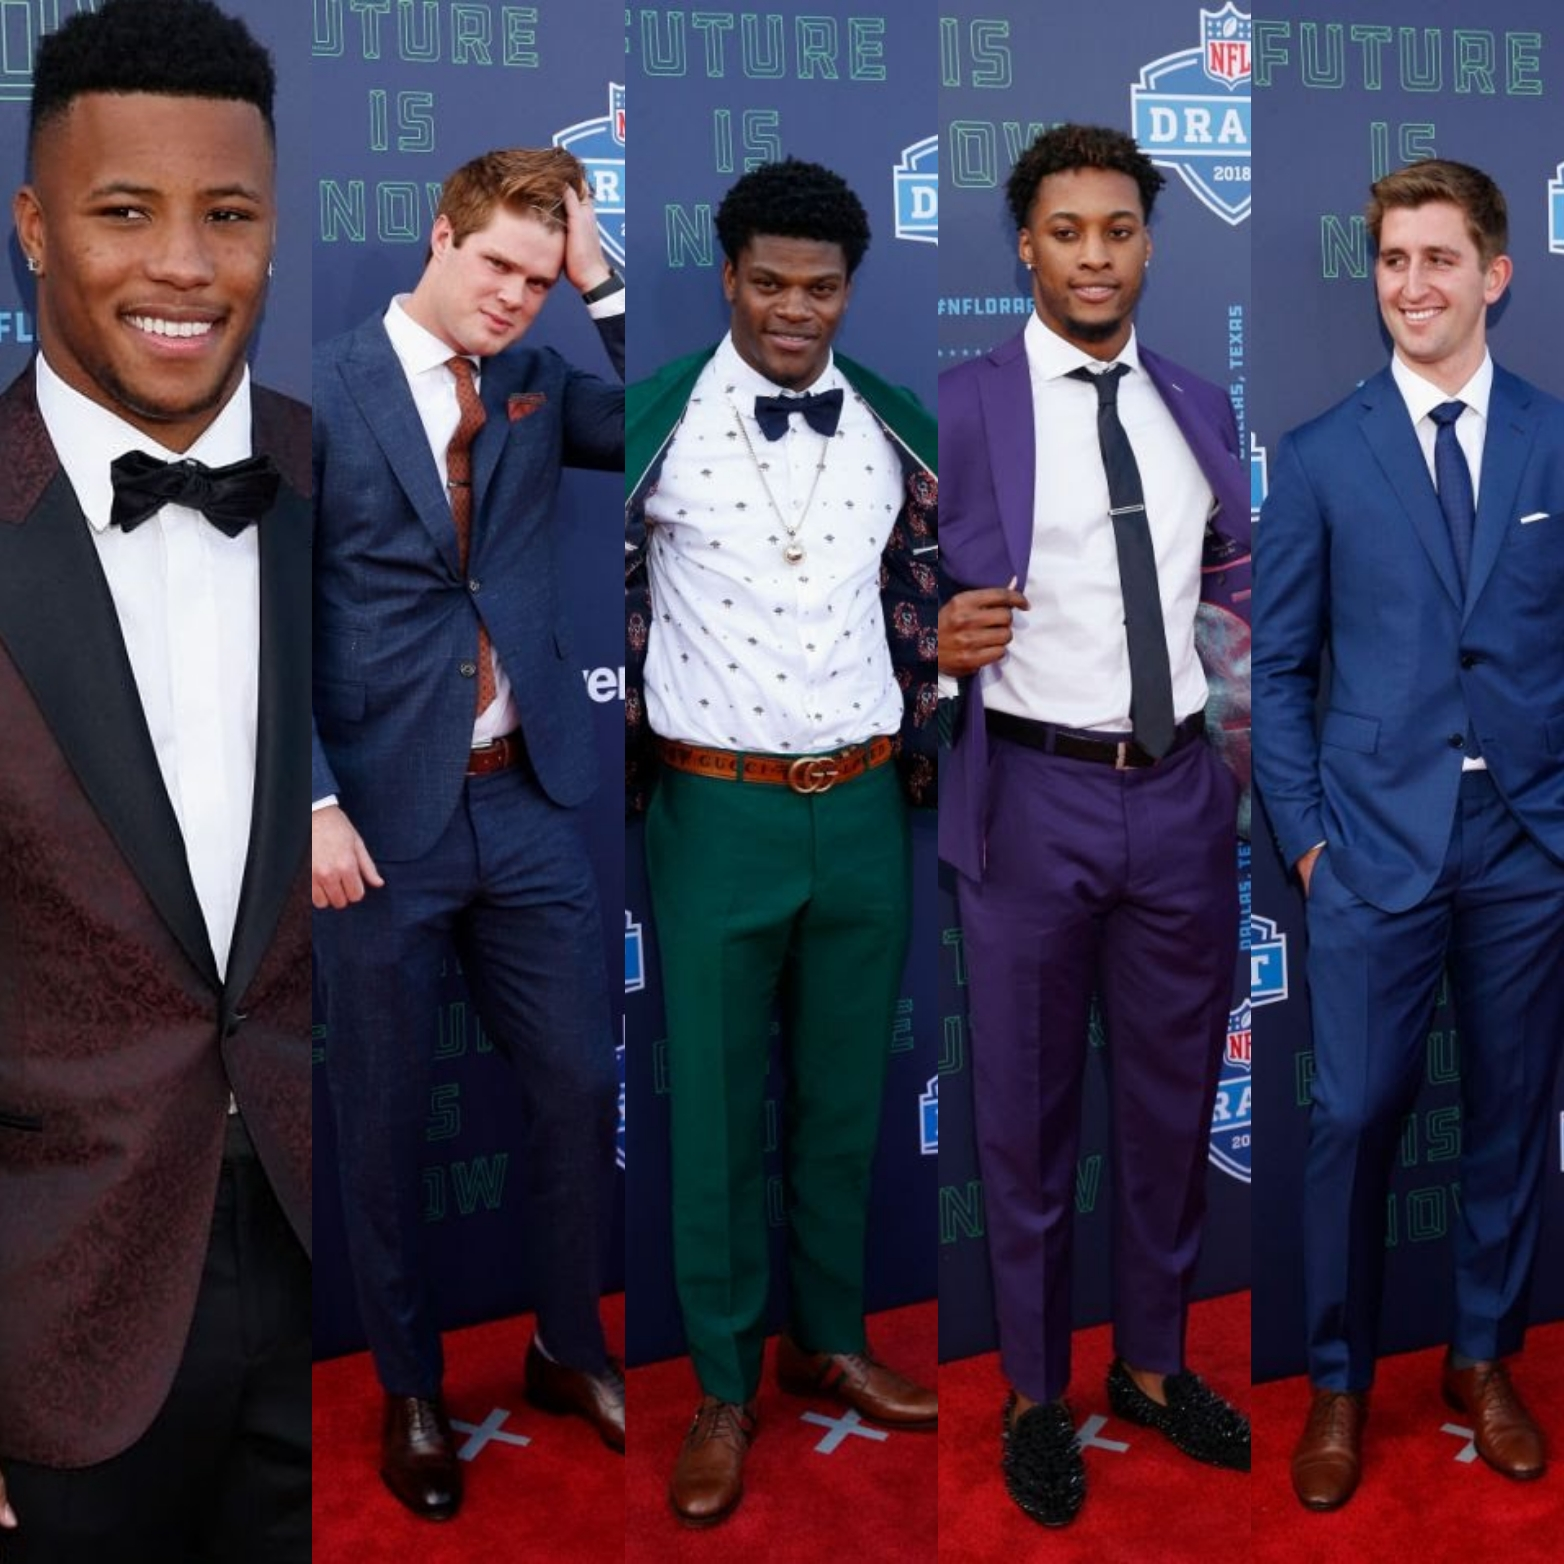 NFL Draft 2018 Fashion: Saquon Barkley, Josh Rosen, Lamar Jackson & More